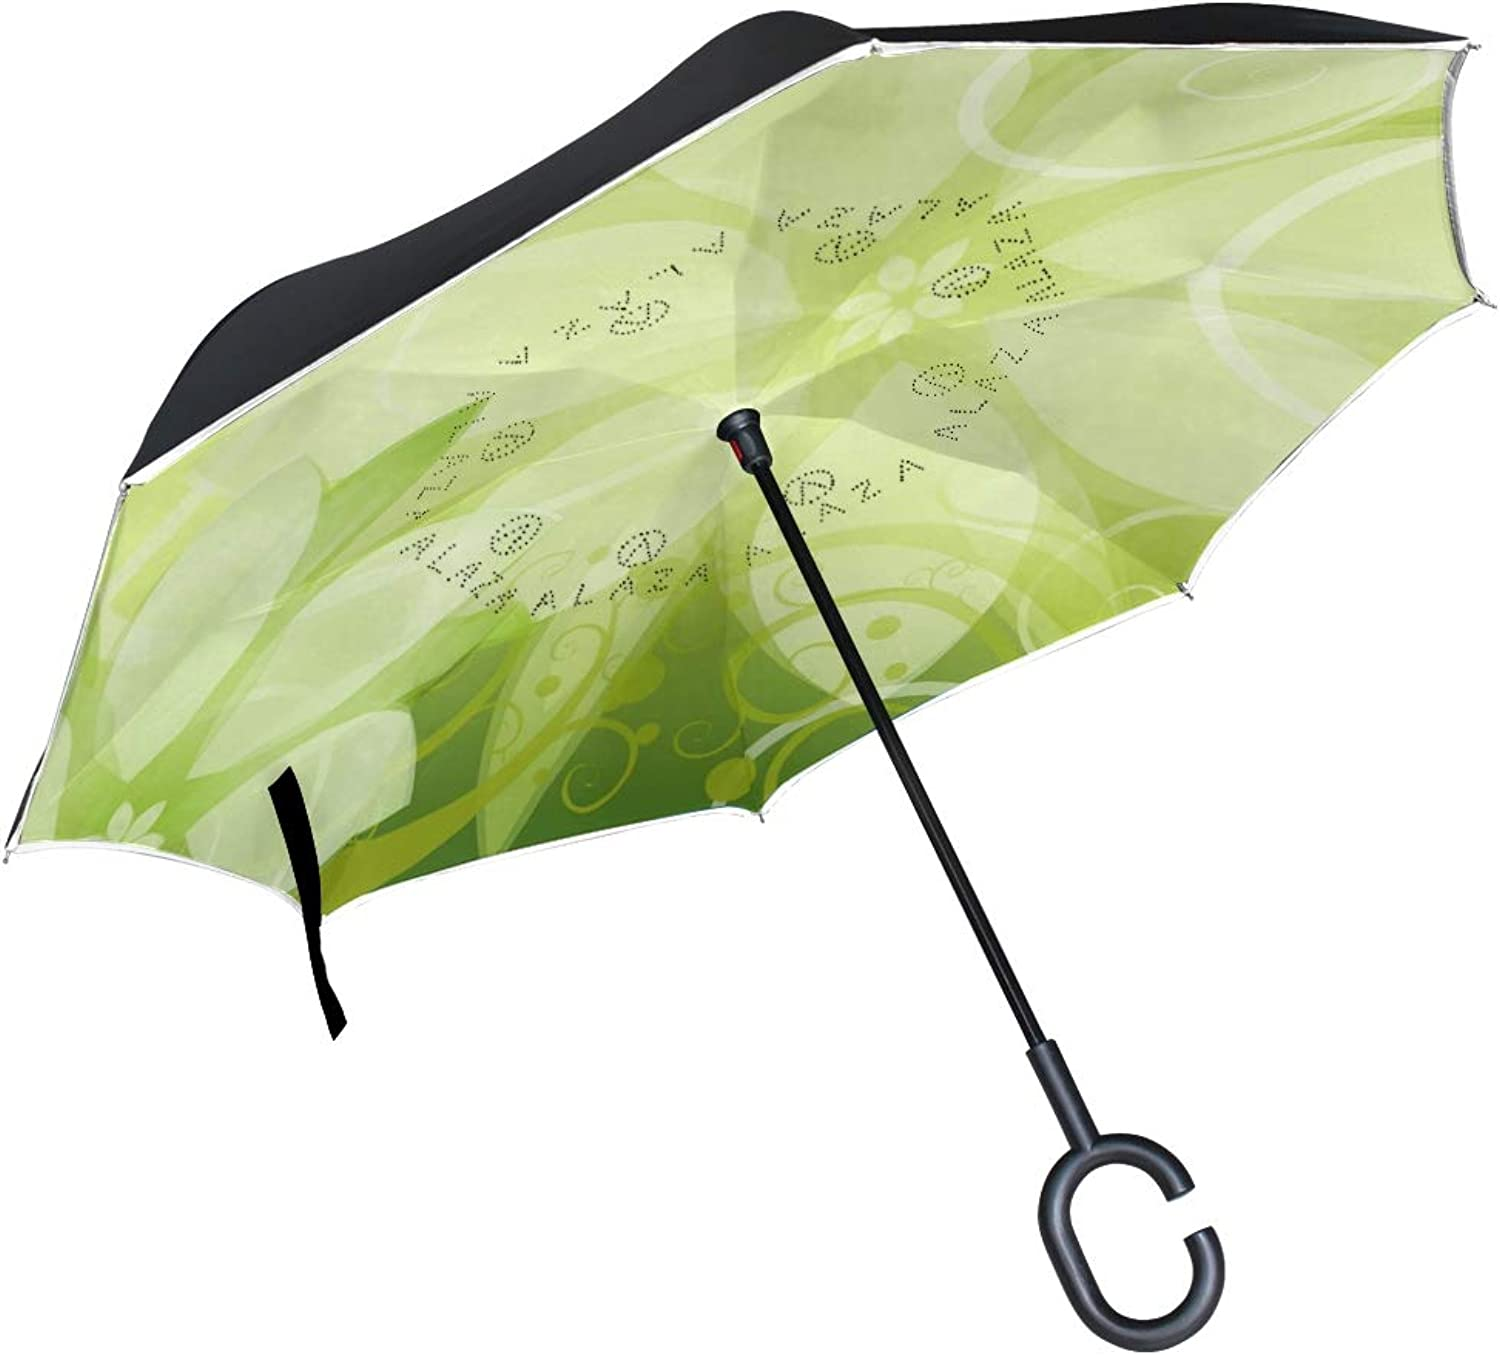 Ingreened Umbrella Double Layer Reverse Umbrella Waterproof Windproof UV Predection Straight Umbrella with CShaped Handle Light Green Floral Digital Printing for Car Rain Outdoor Use